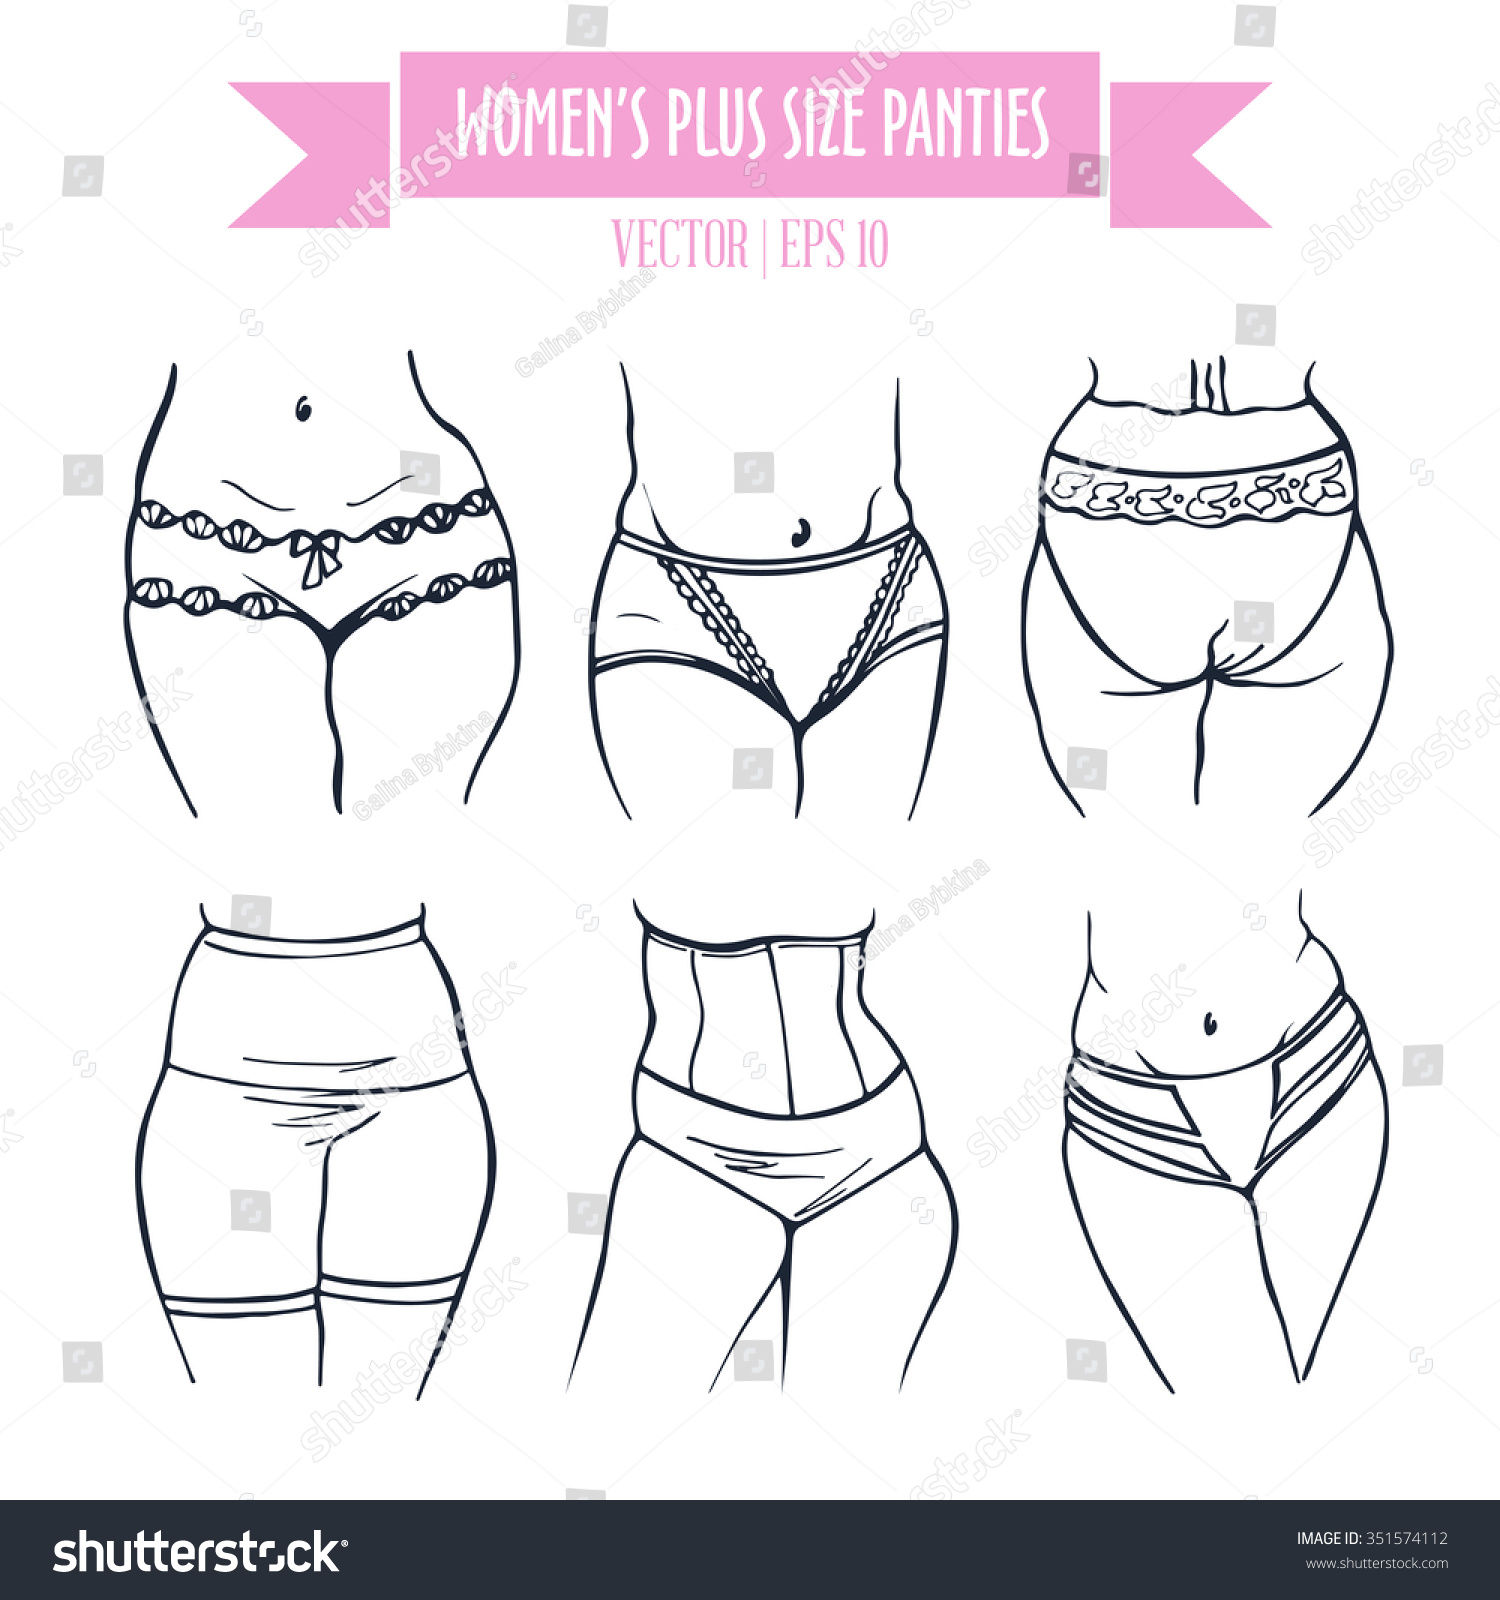 Different Types Panties Women Plus Size Stock Vector 351574112 ...